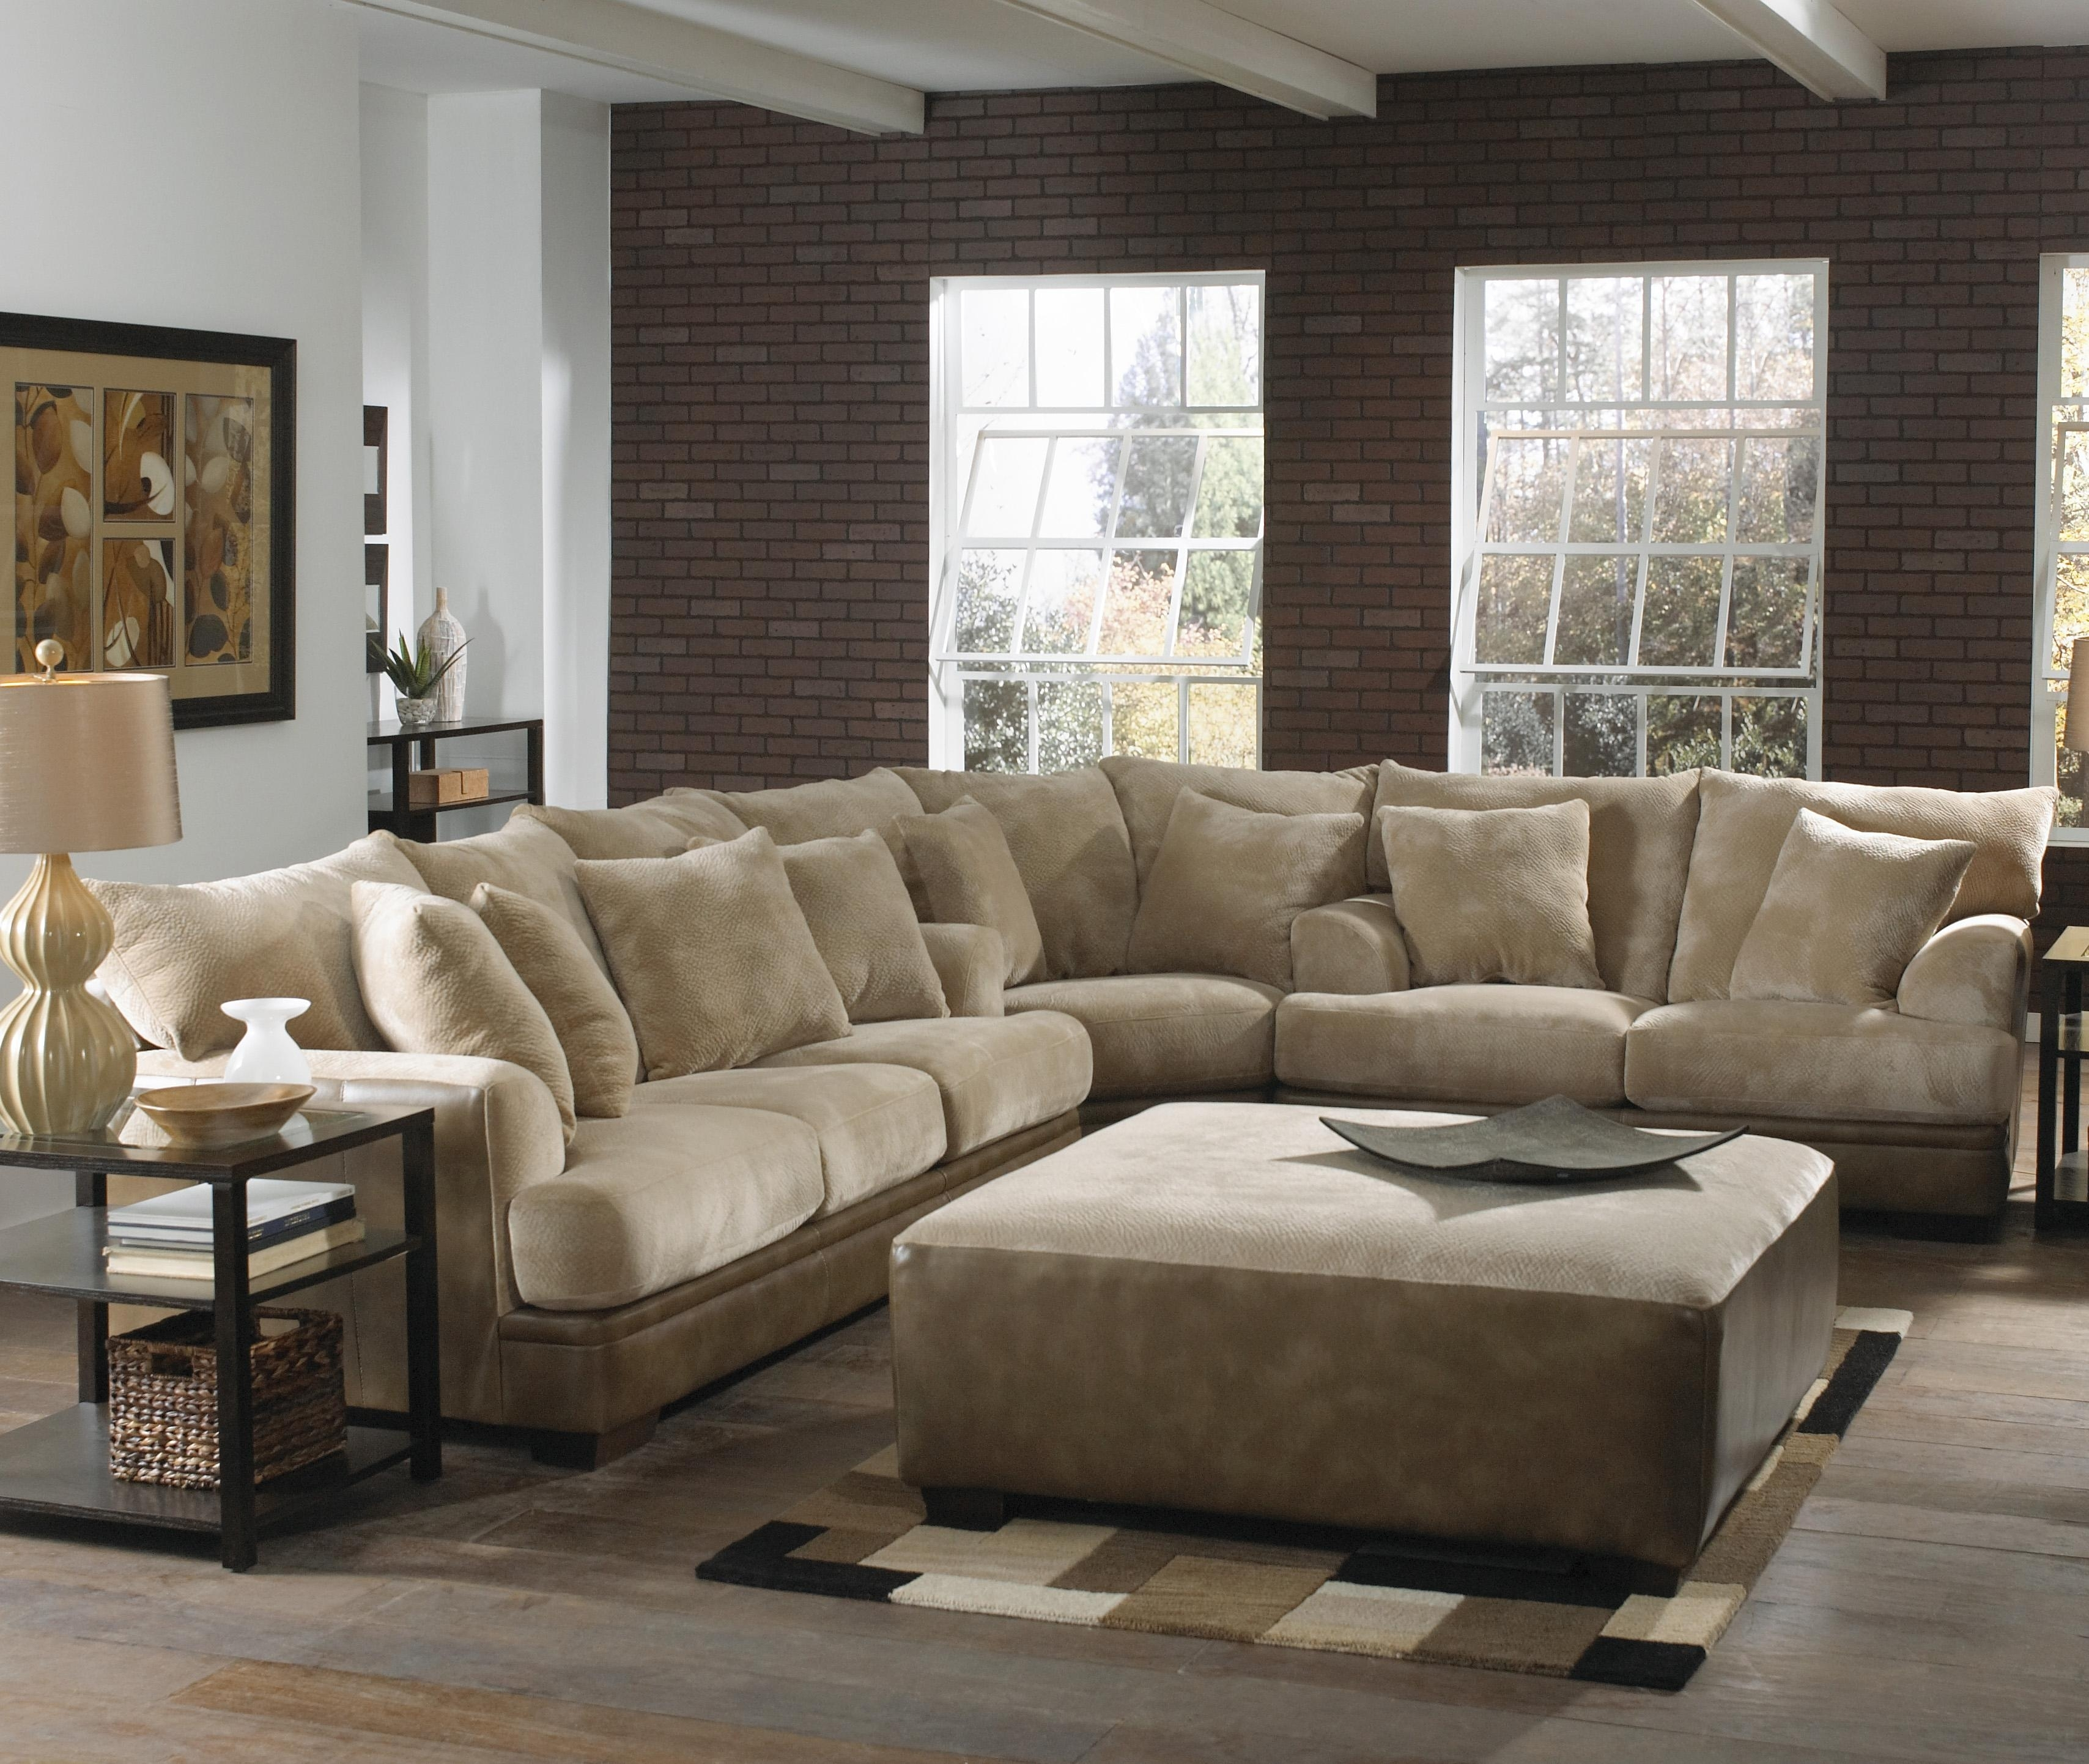 Furniture : Corner Couch And Swivel Chair Sectional Couch Vancouver Pertaining To Vancouver Wa Sectional Sofas (Image 6 of 10)